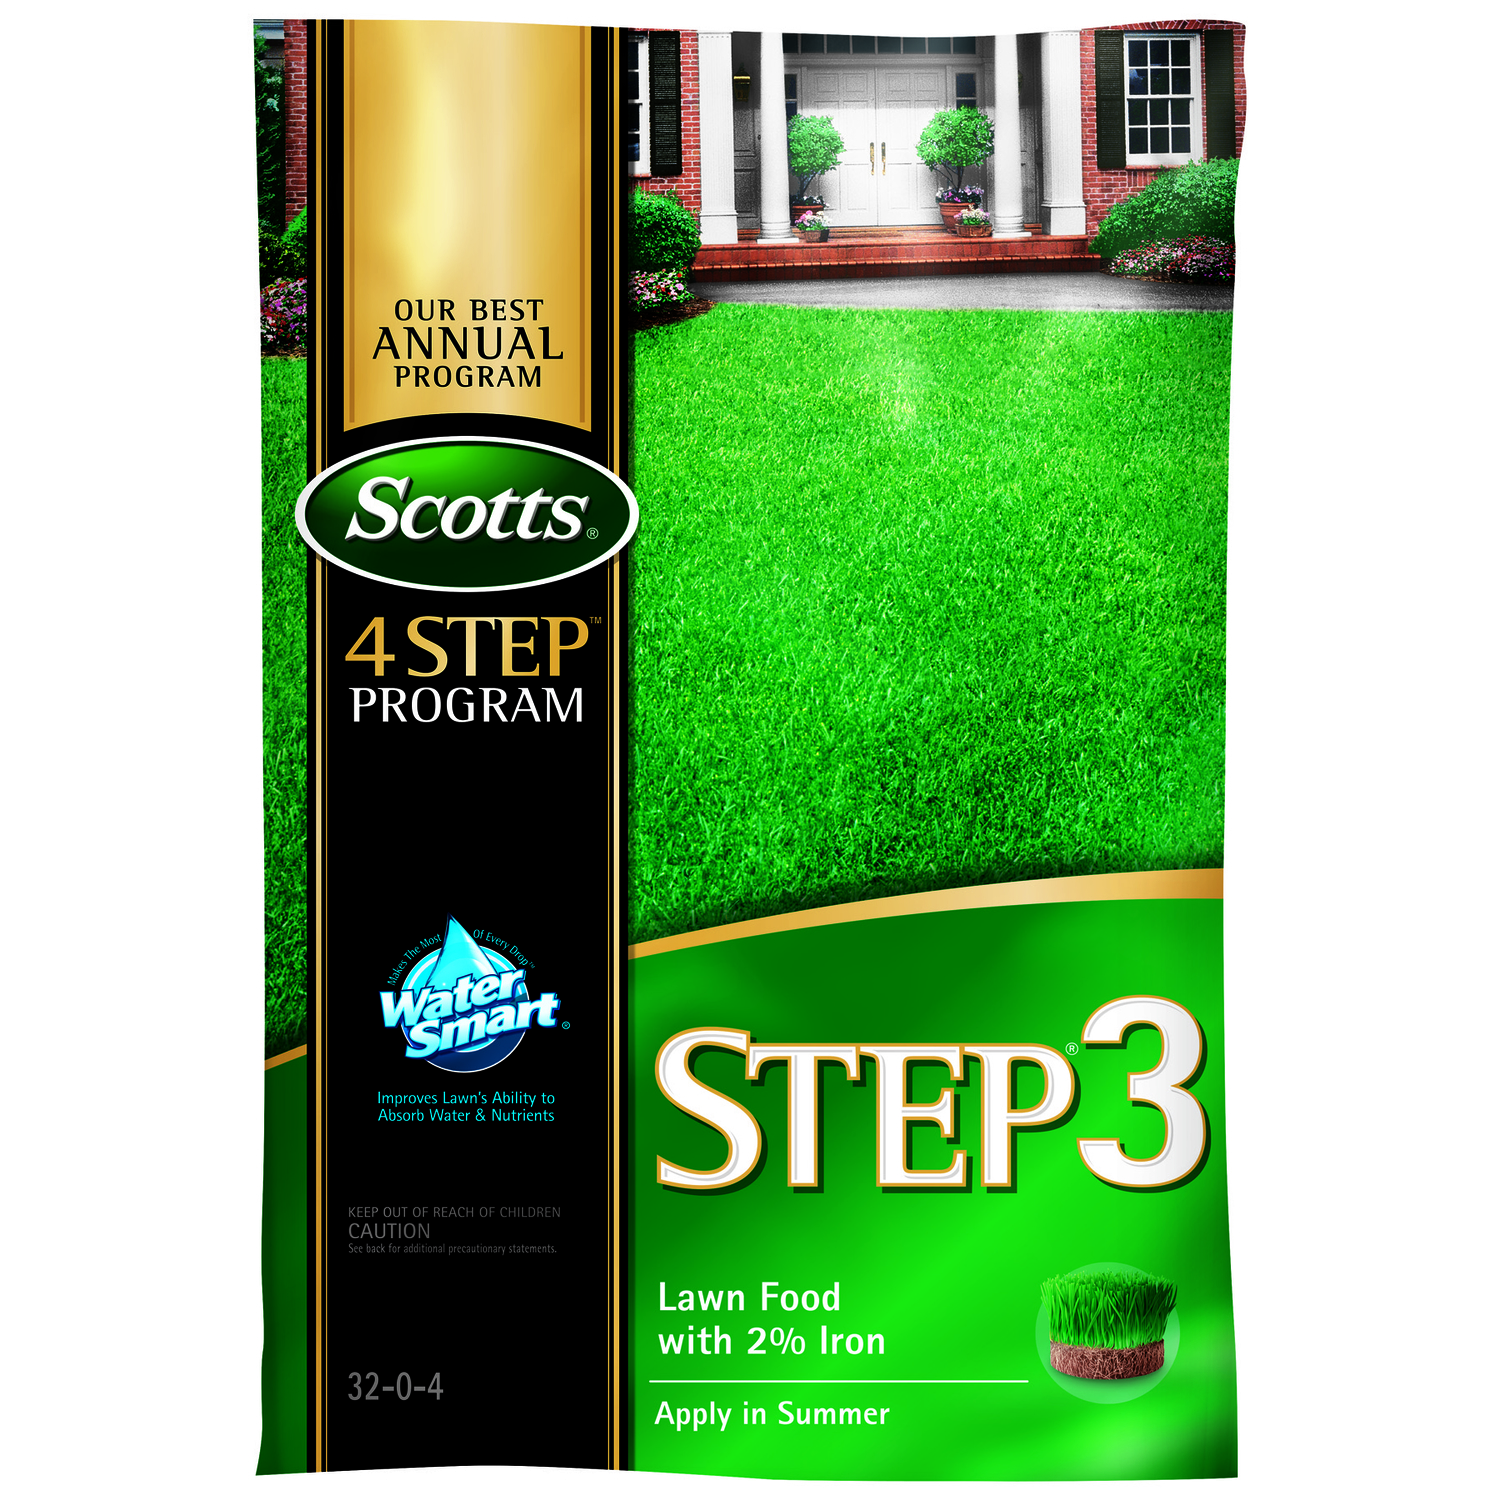 Upc 032247330503 Scotts 33050 Lawnpro Step 3 Lawn Food